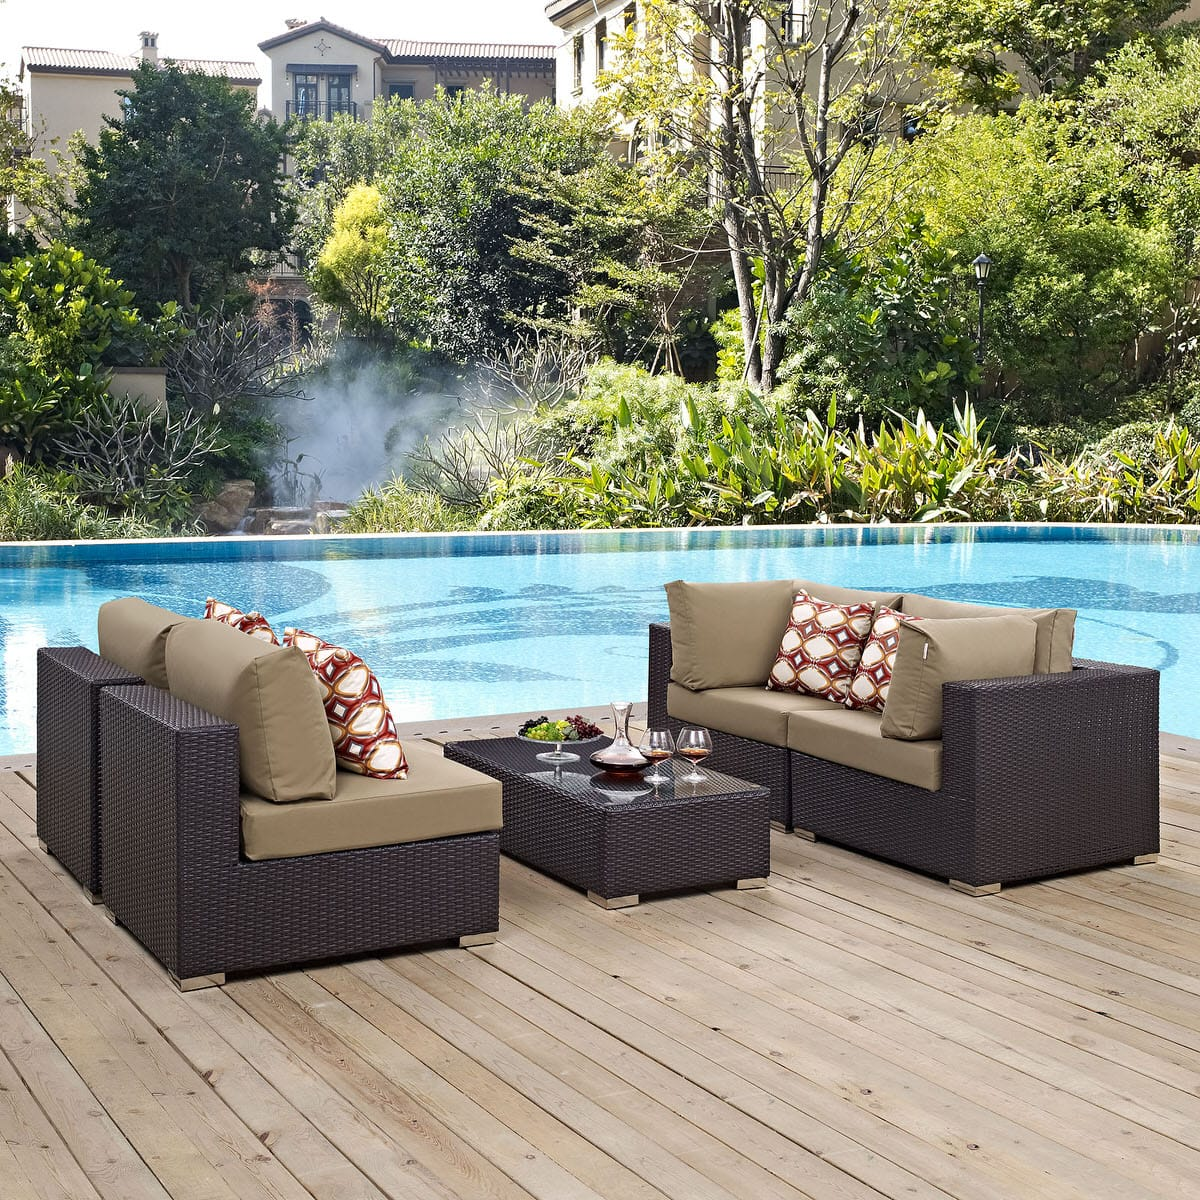 owlee modern pacificamodernpatiosectionalset sale set ow lee sectional patio pacifica